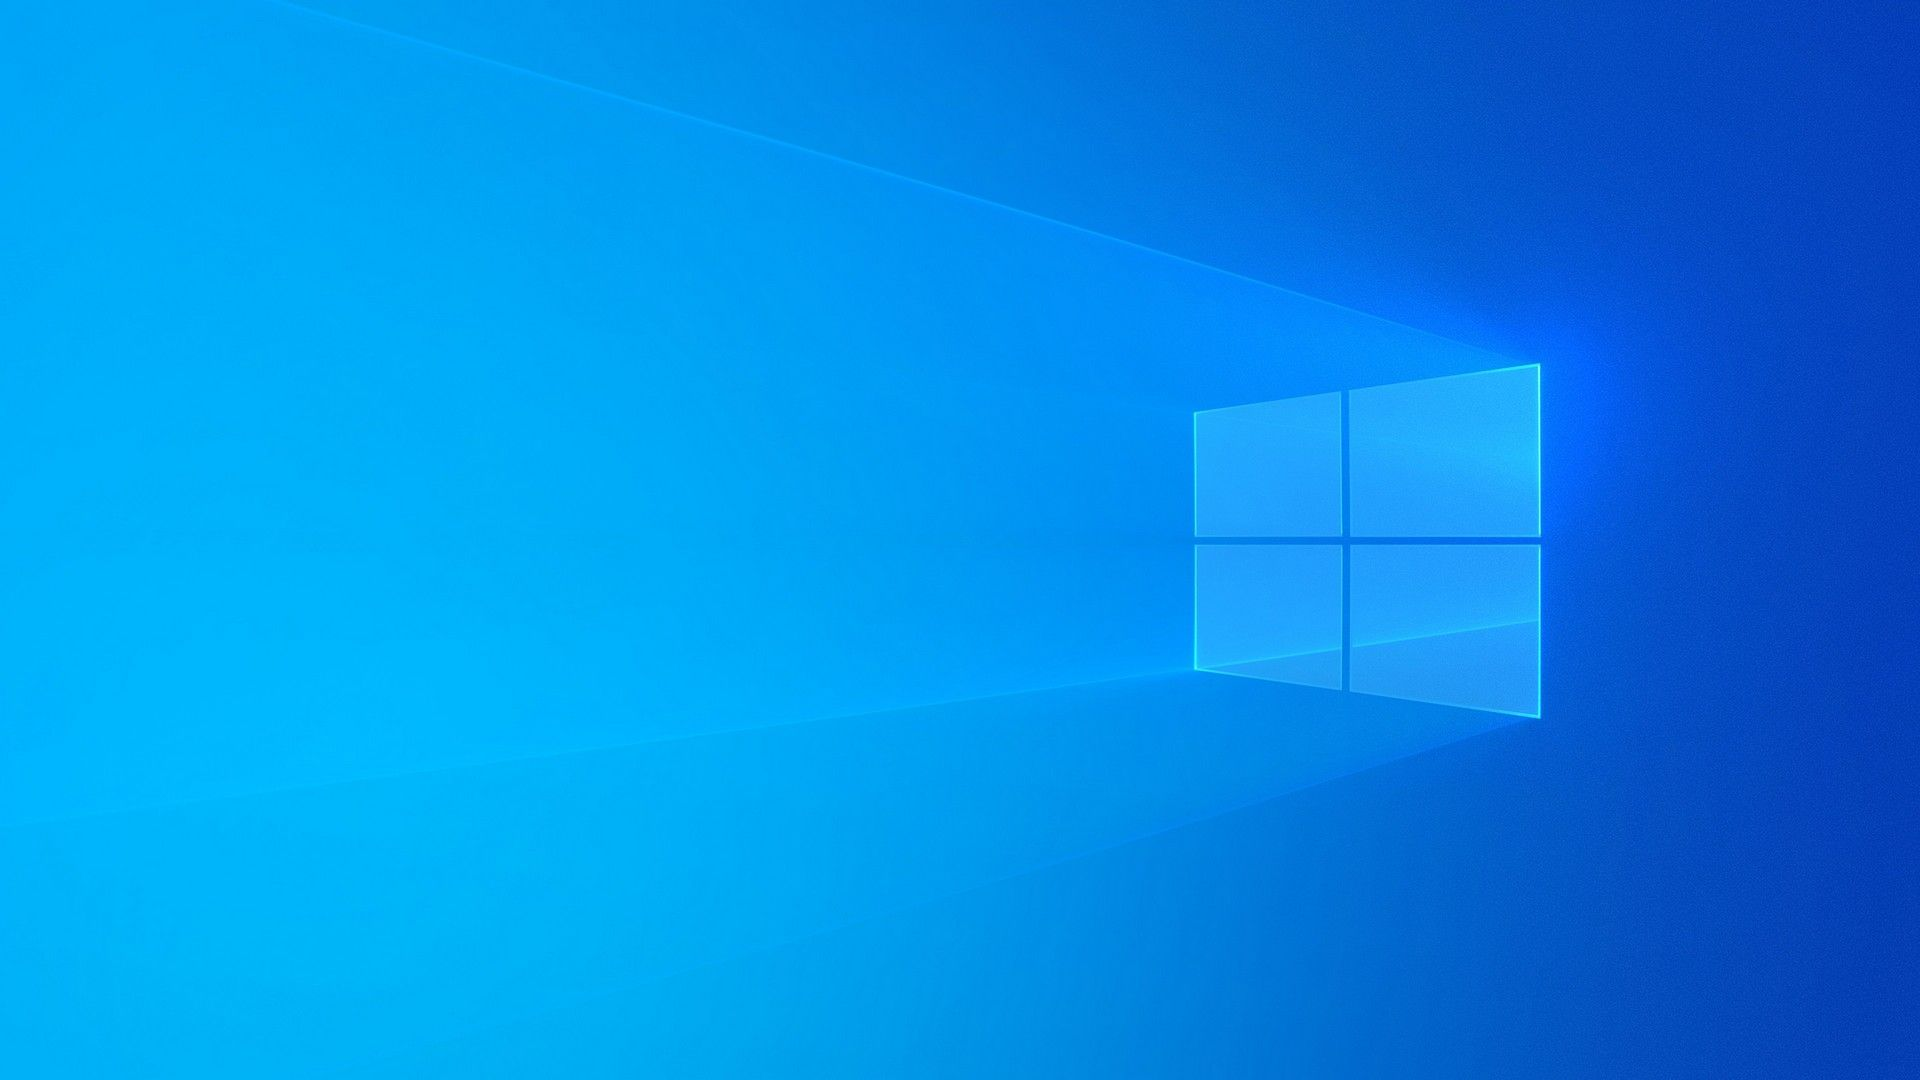 Wallpapers Computer Windows 10 2020 Live Wallpaper Hd Wallpaper Windows 10 Microsoft Windows Windows 10